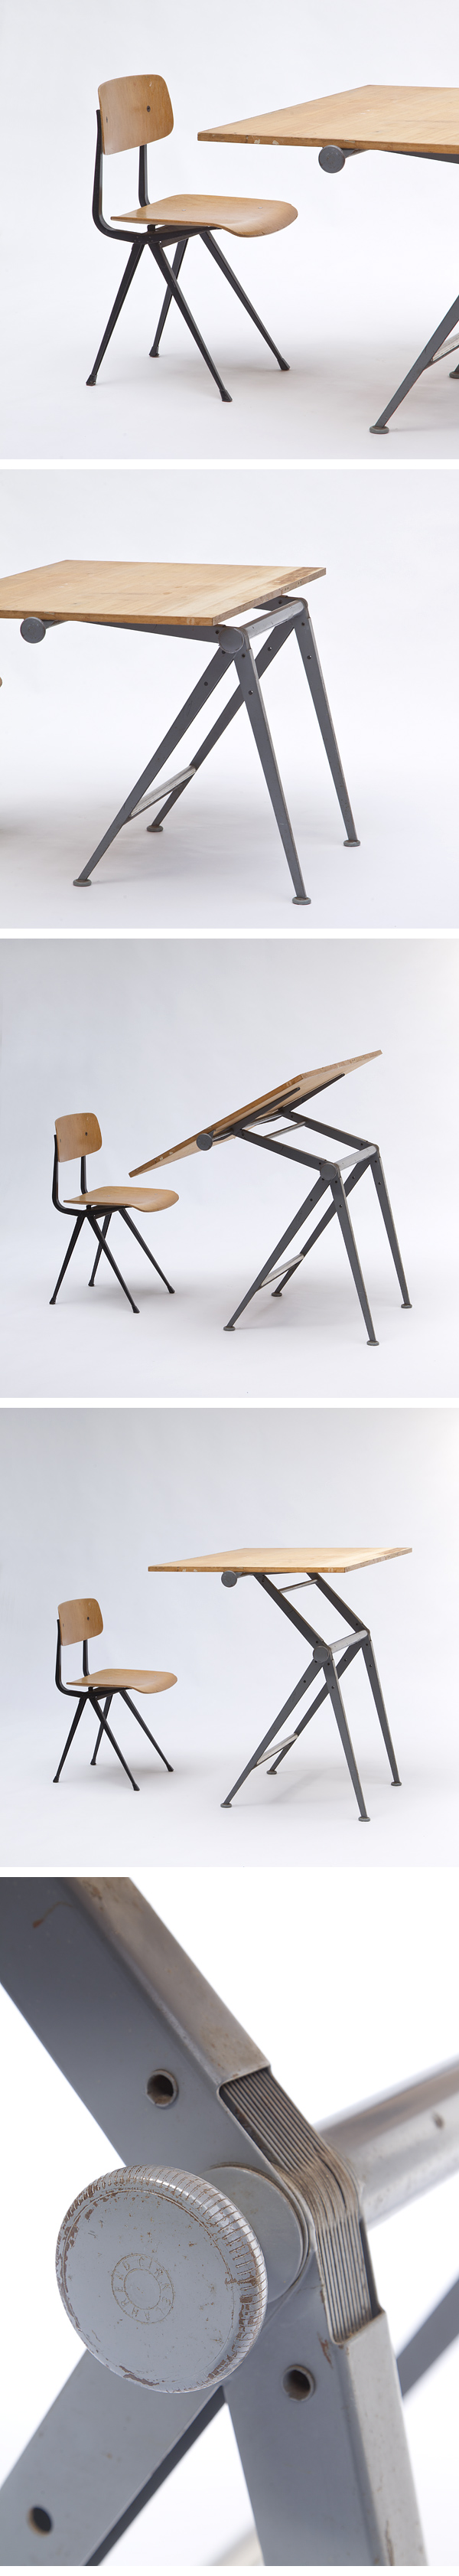 Wim Rietveld, Drafting Table, chair, dutch, design, vintage